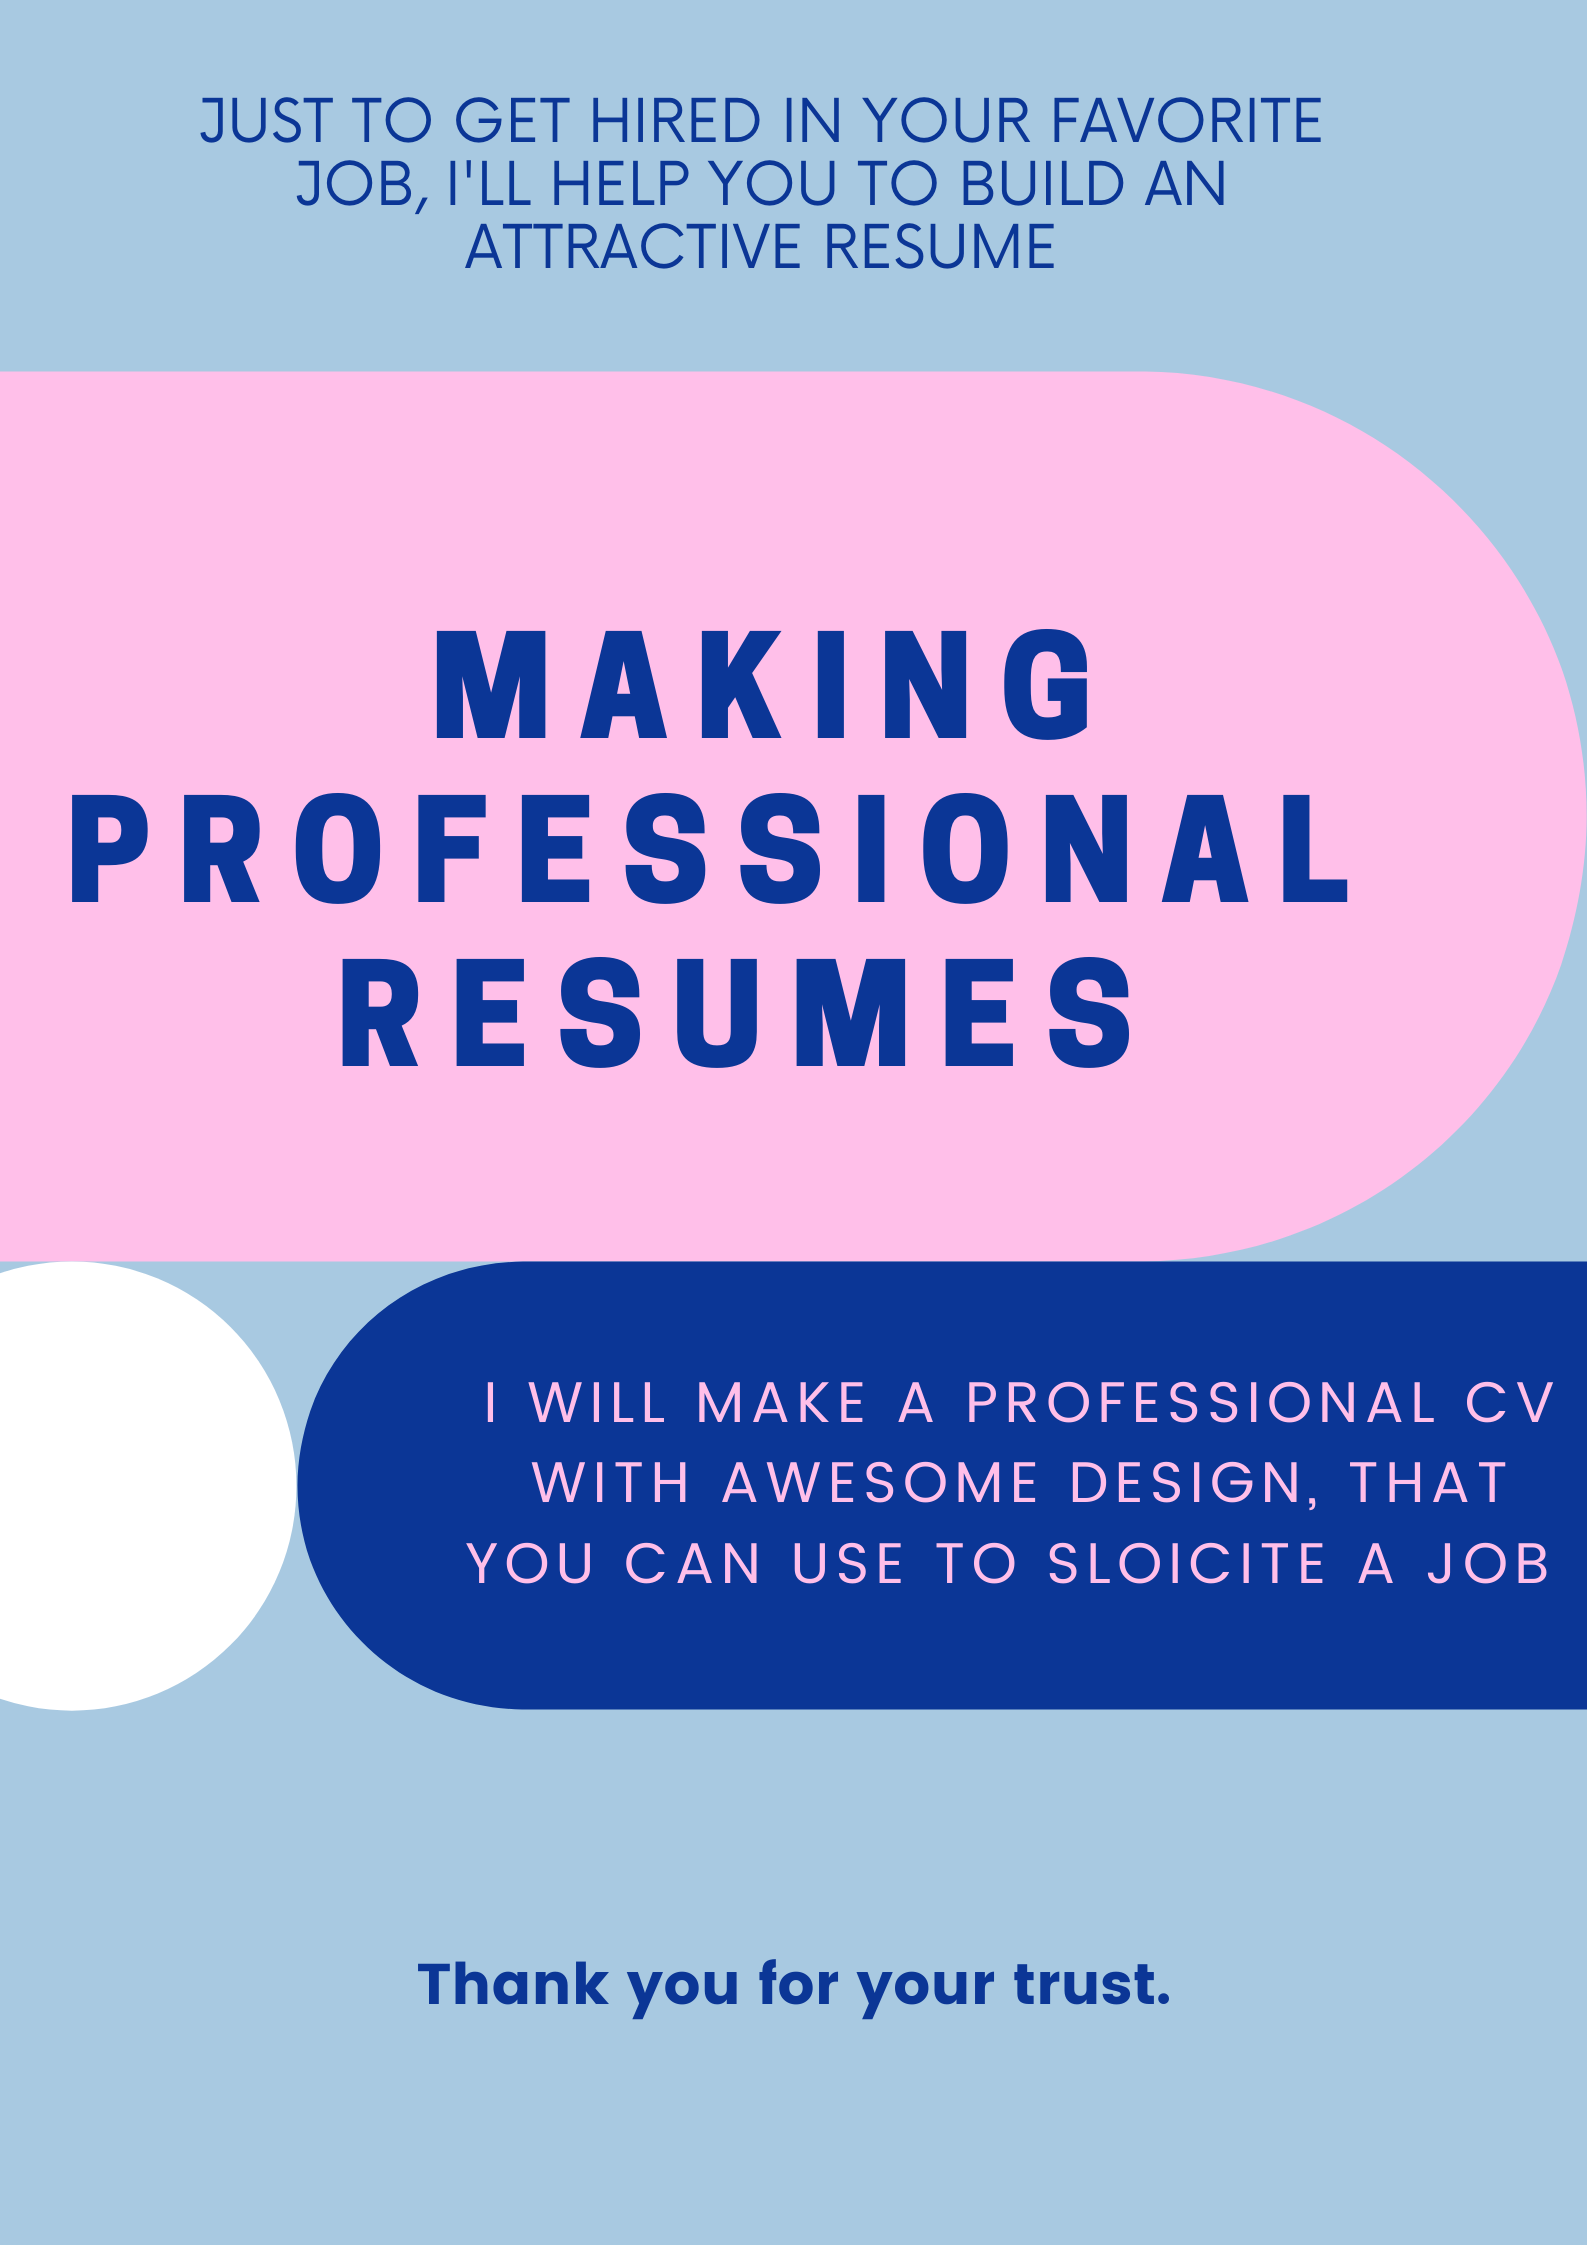 I will a professional and attractive CV